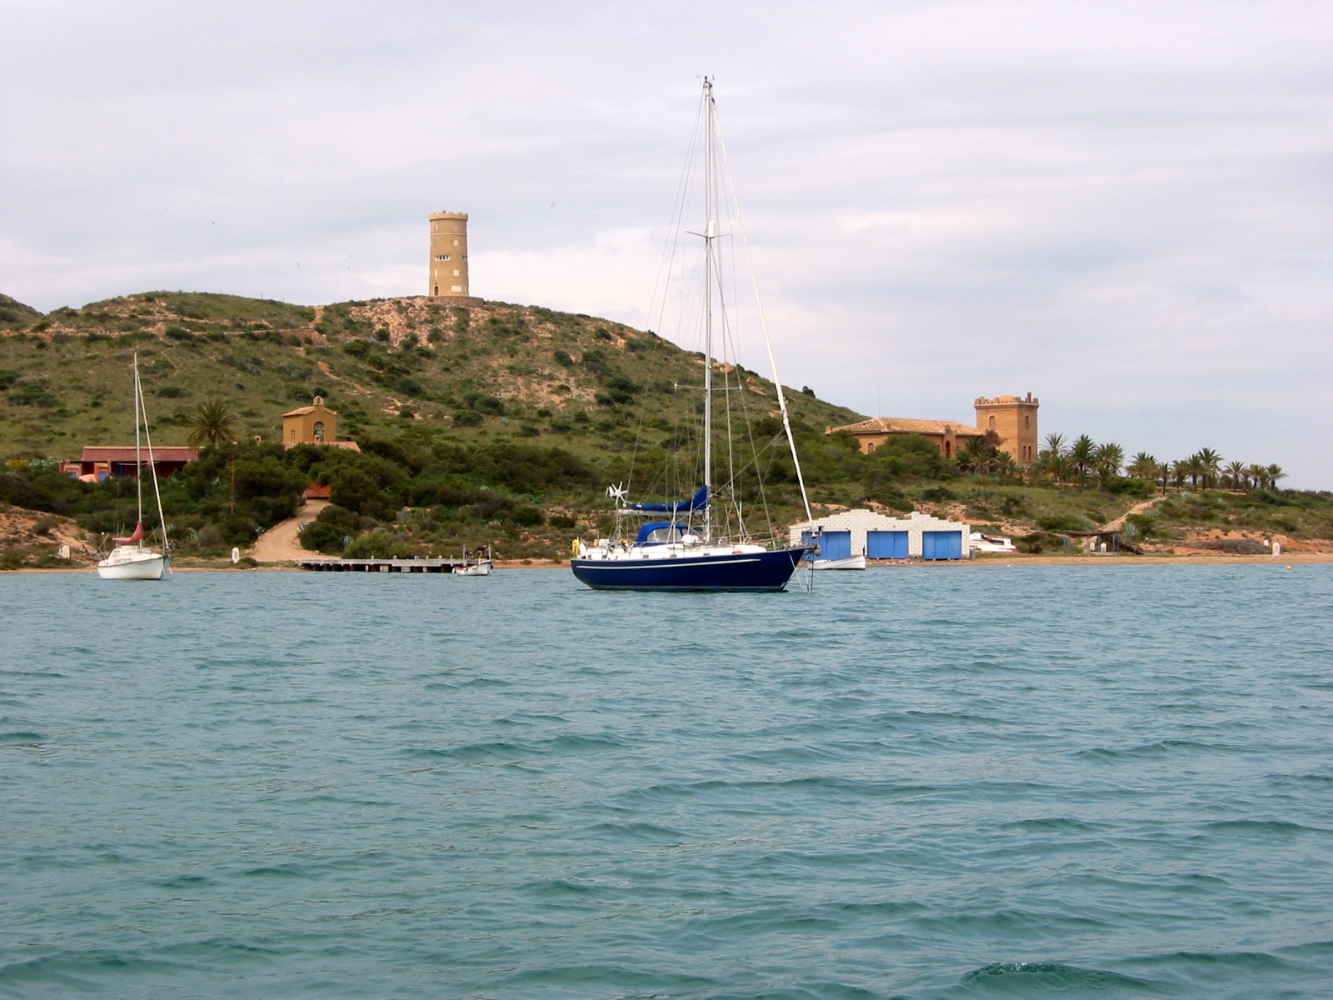 Private Islands for rent - Baron Island - Spain - Europe ...